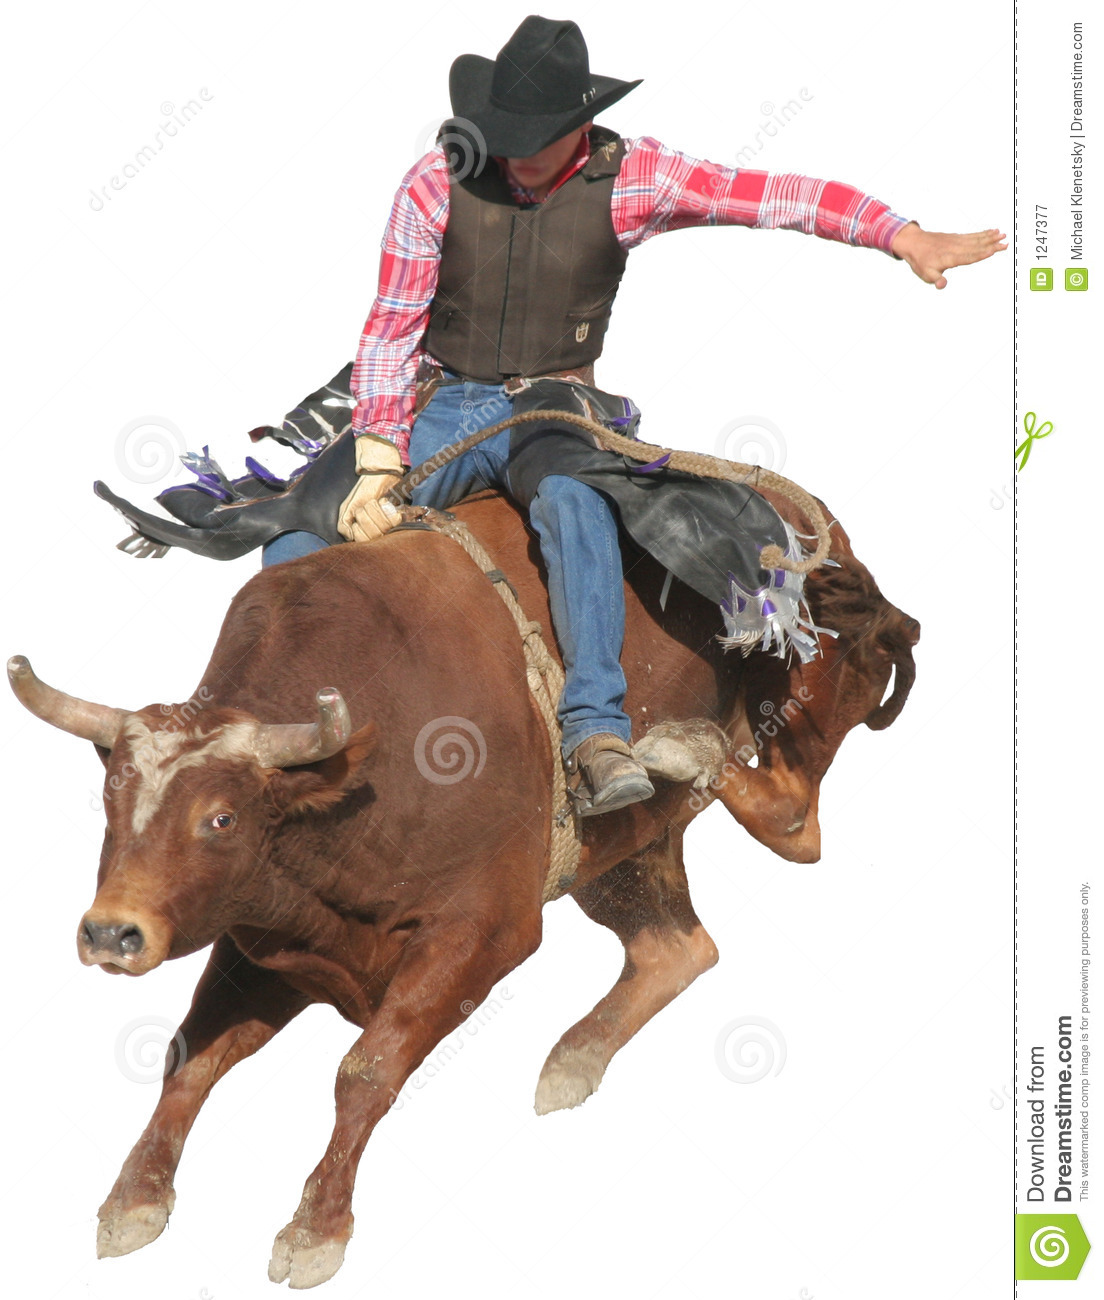 Bull Rider stock image. Image of competition, extreme.